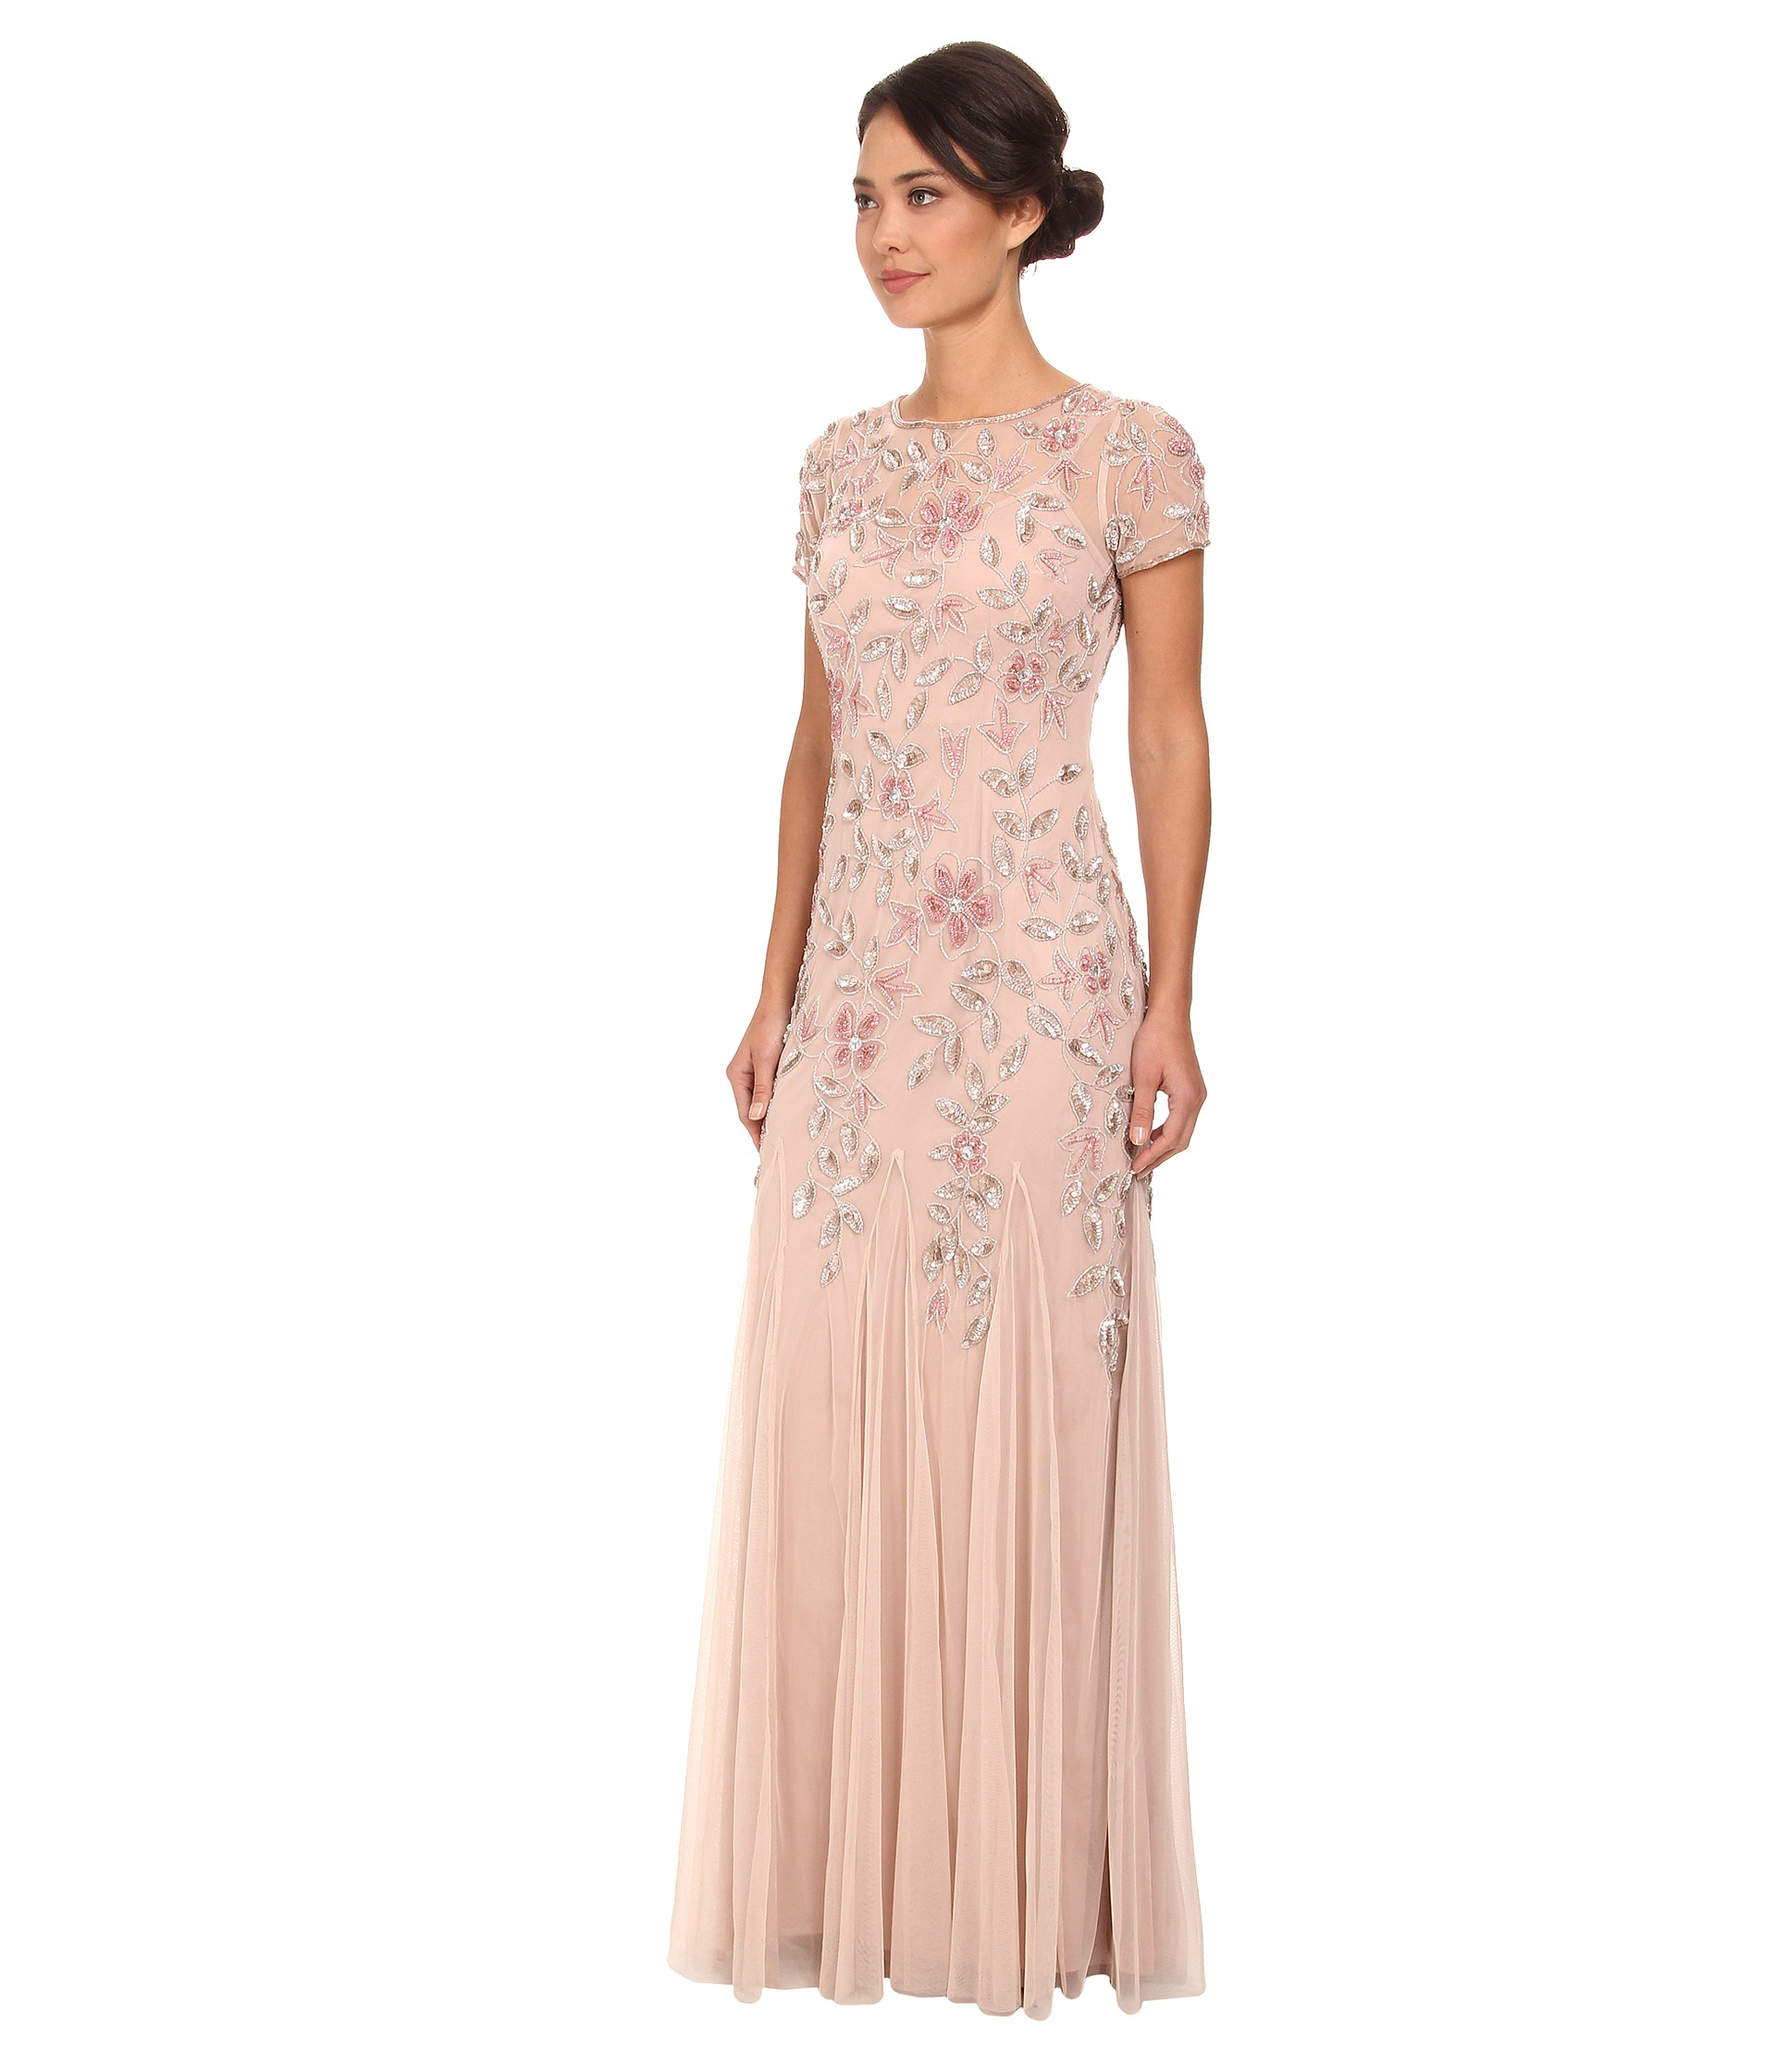 Lyst - Adrianna Papell Floral Beaded Godet Gown in Pink